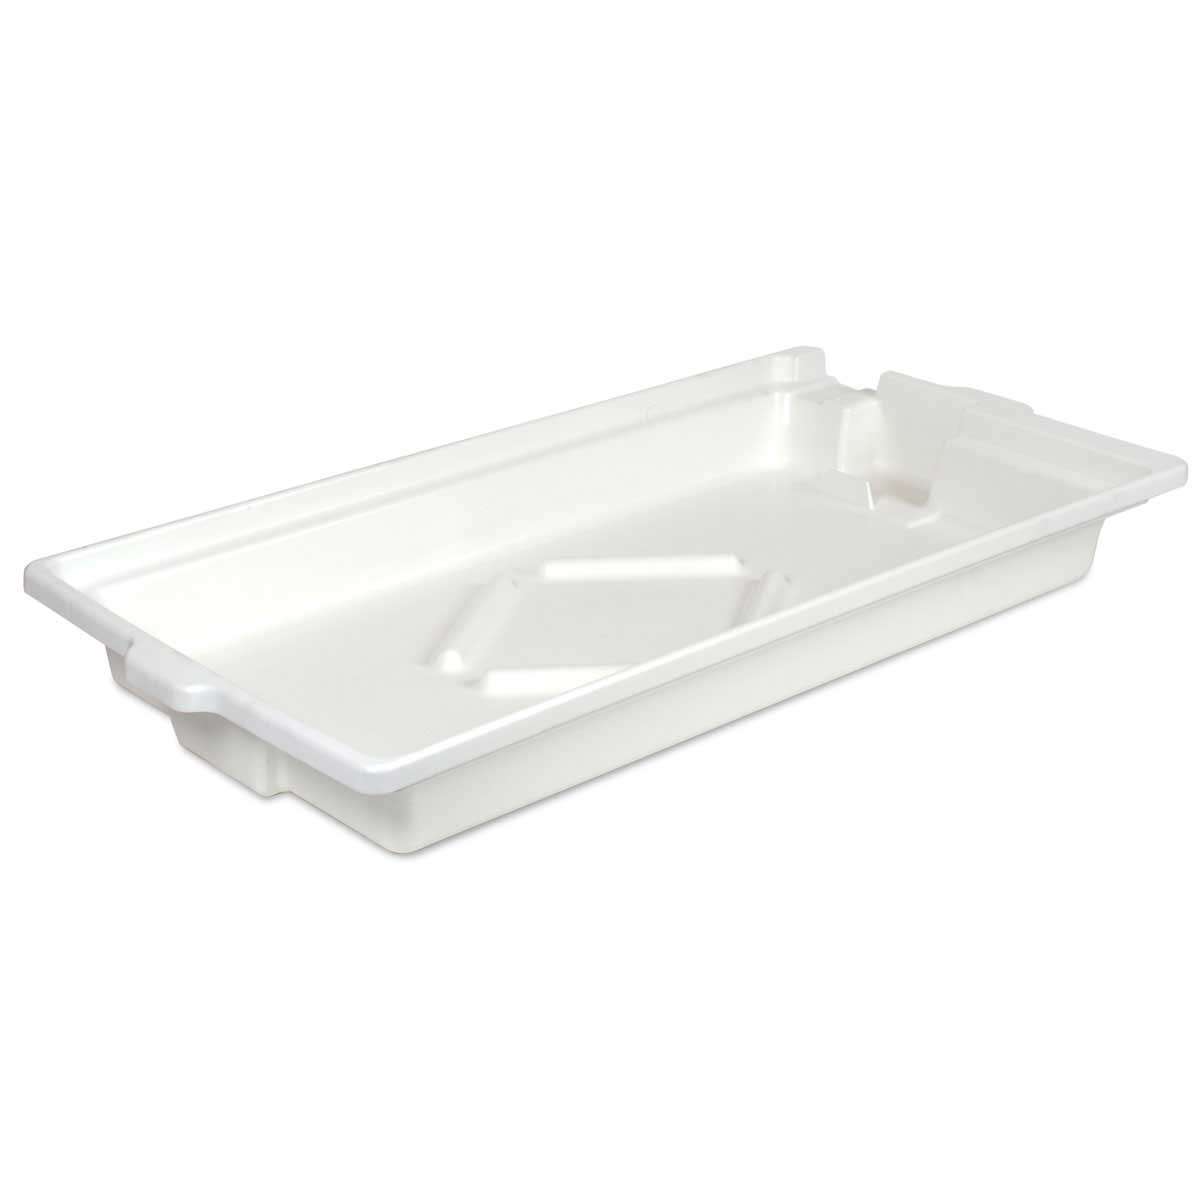 Replacement Water Pan for MK-270, 370, & 470 Tile Saws